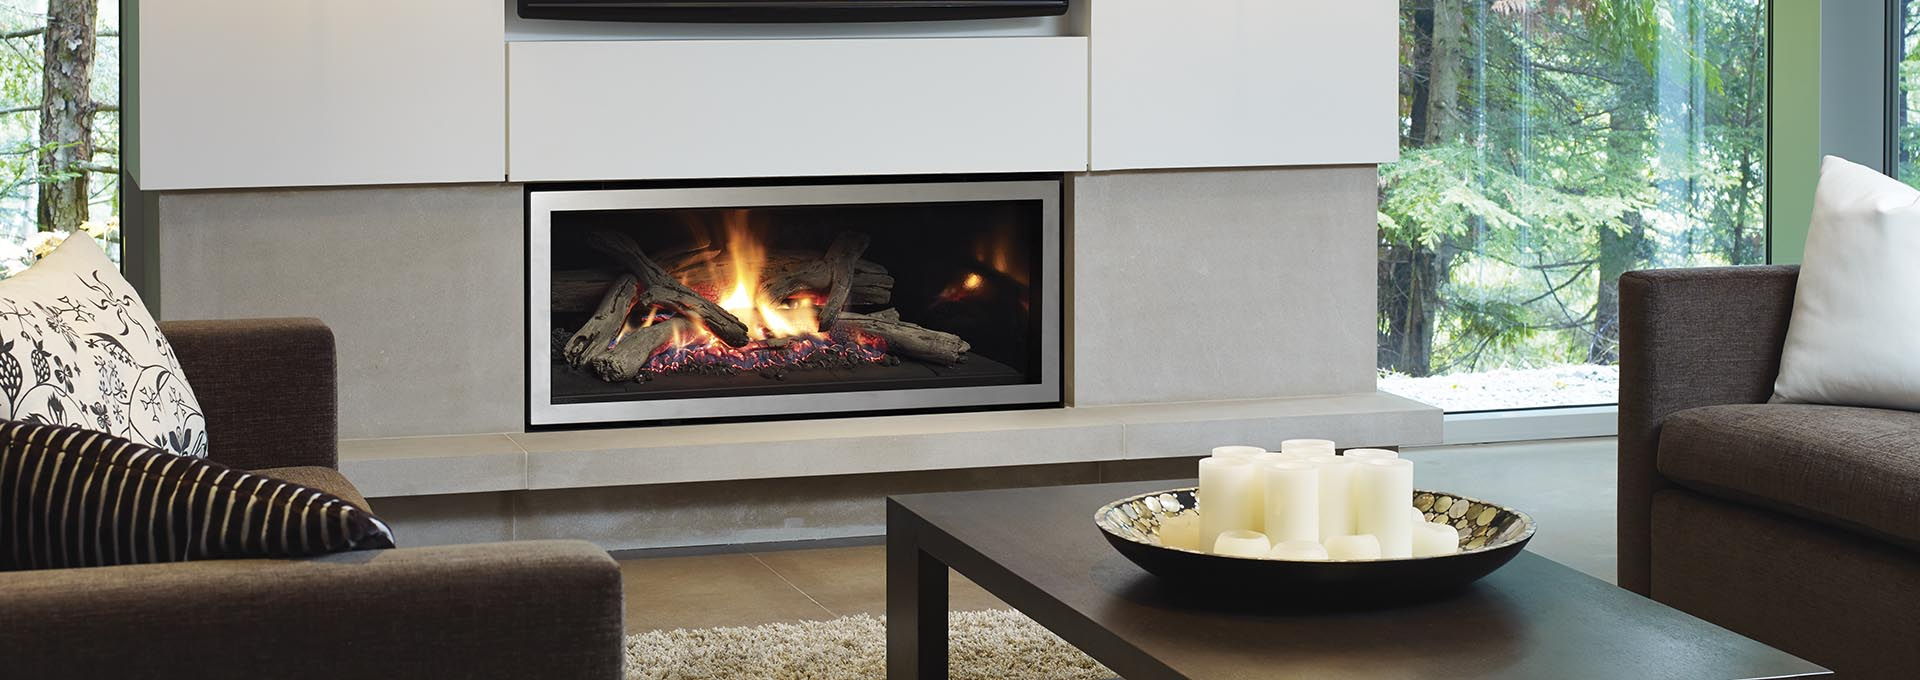 Top Tips to Get the Most Out Of Your Fire This Winter